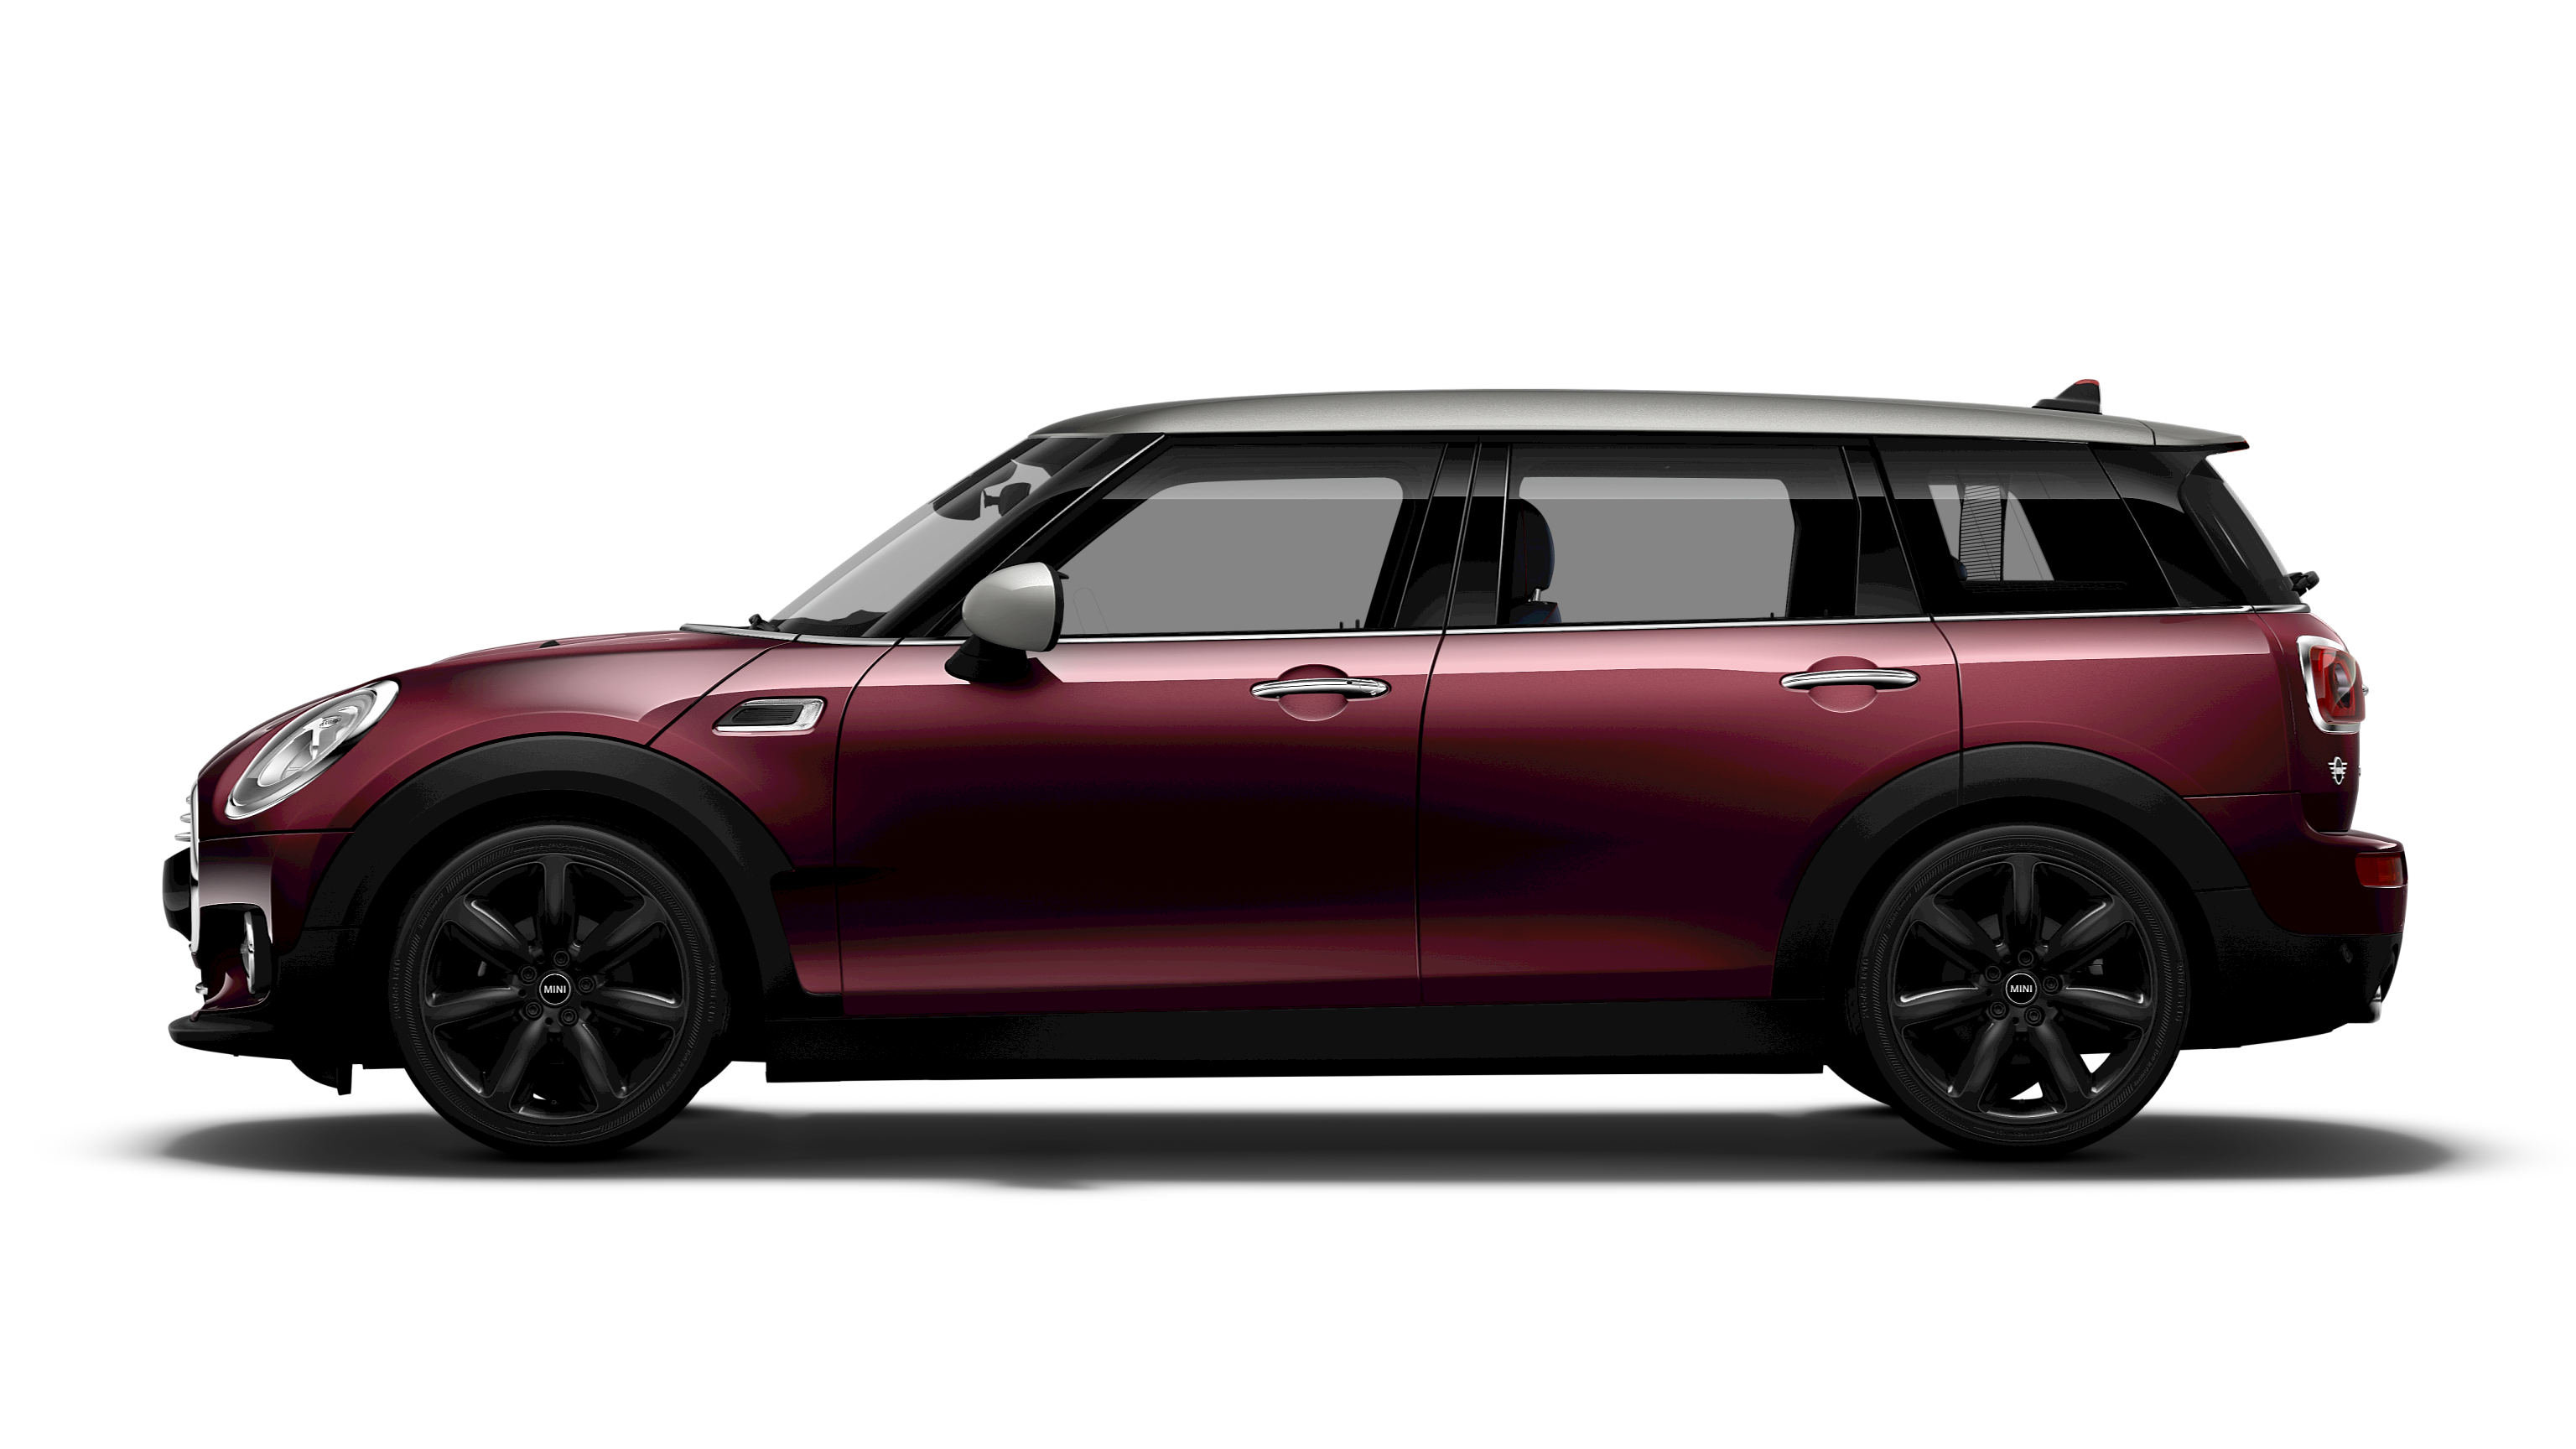 MINI CLUBMAN SIDE VIEW